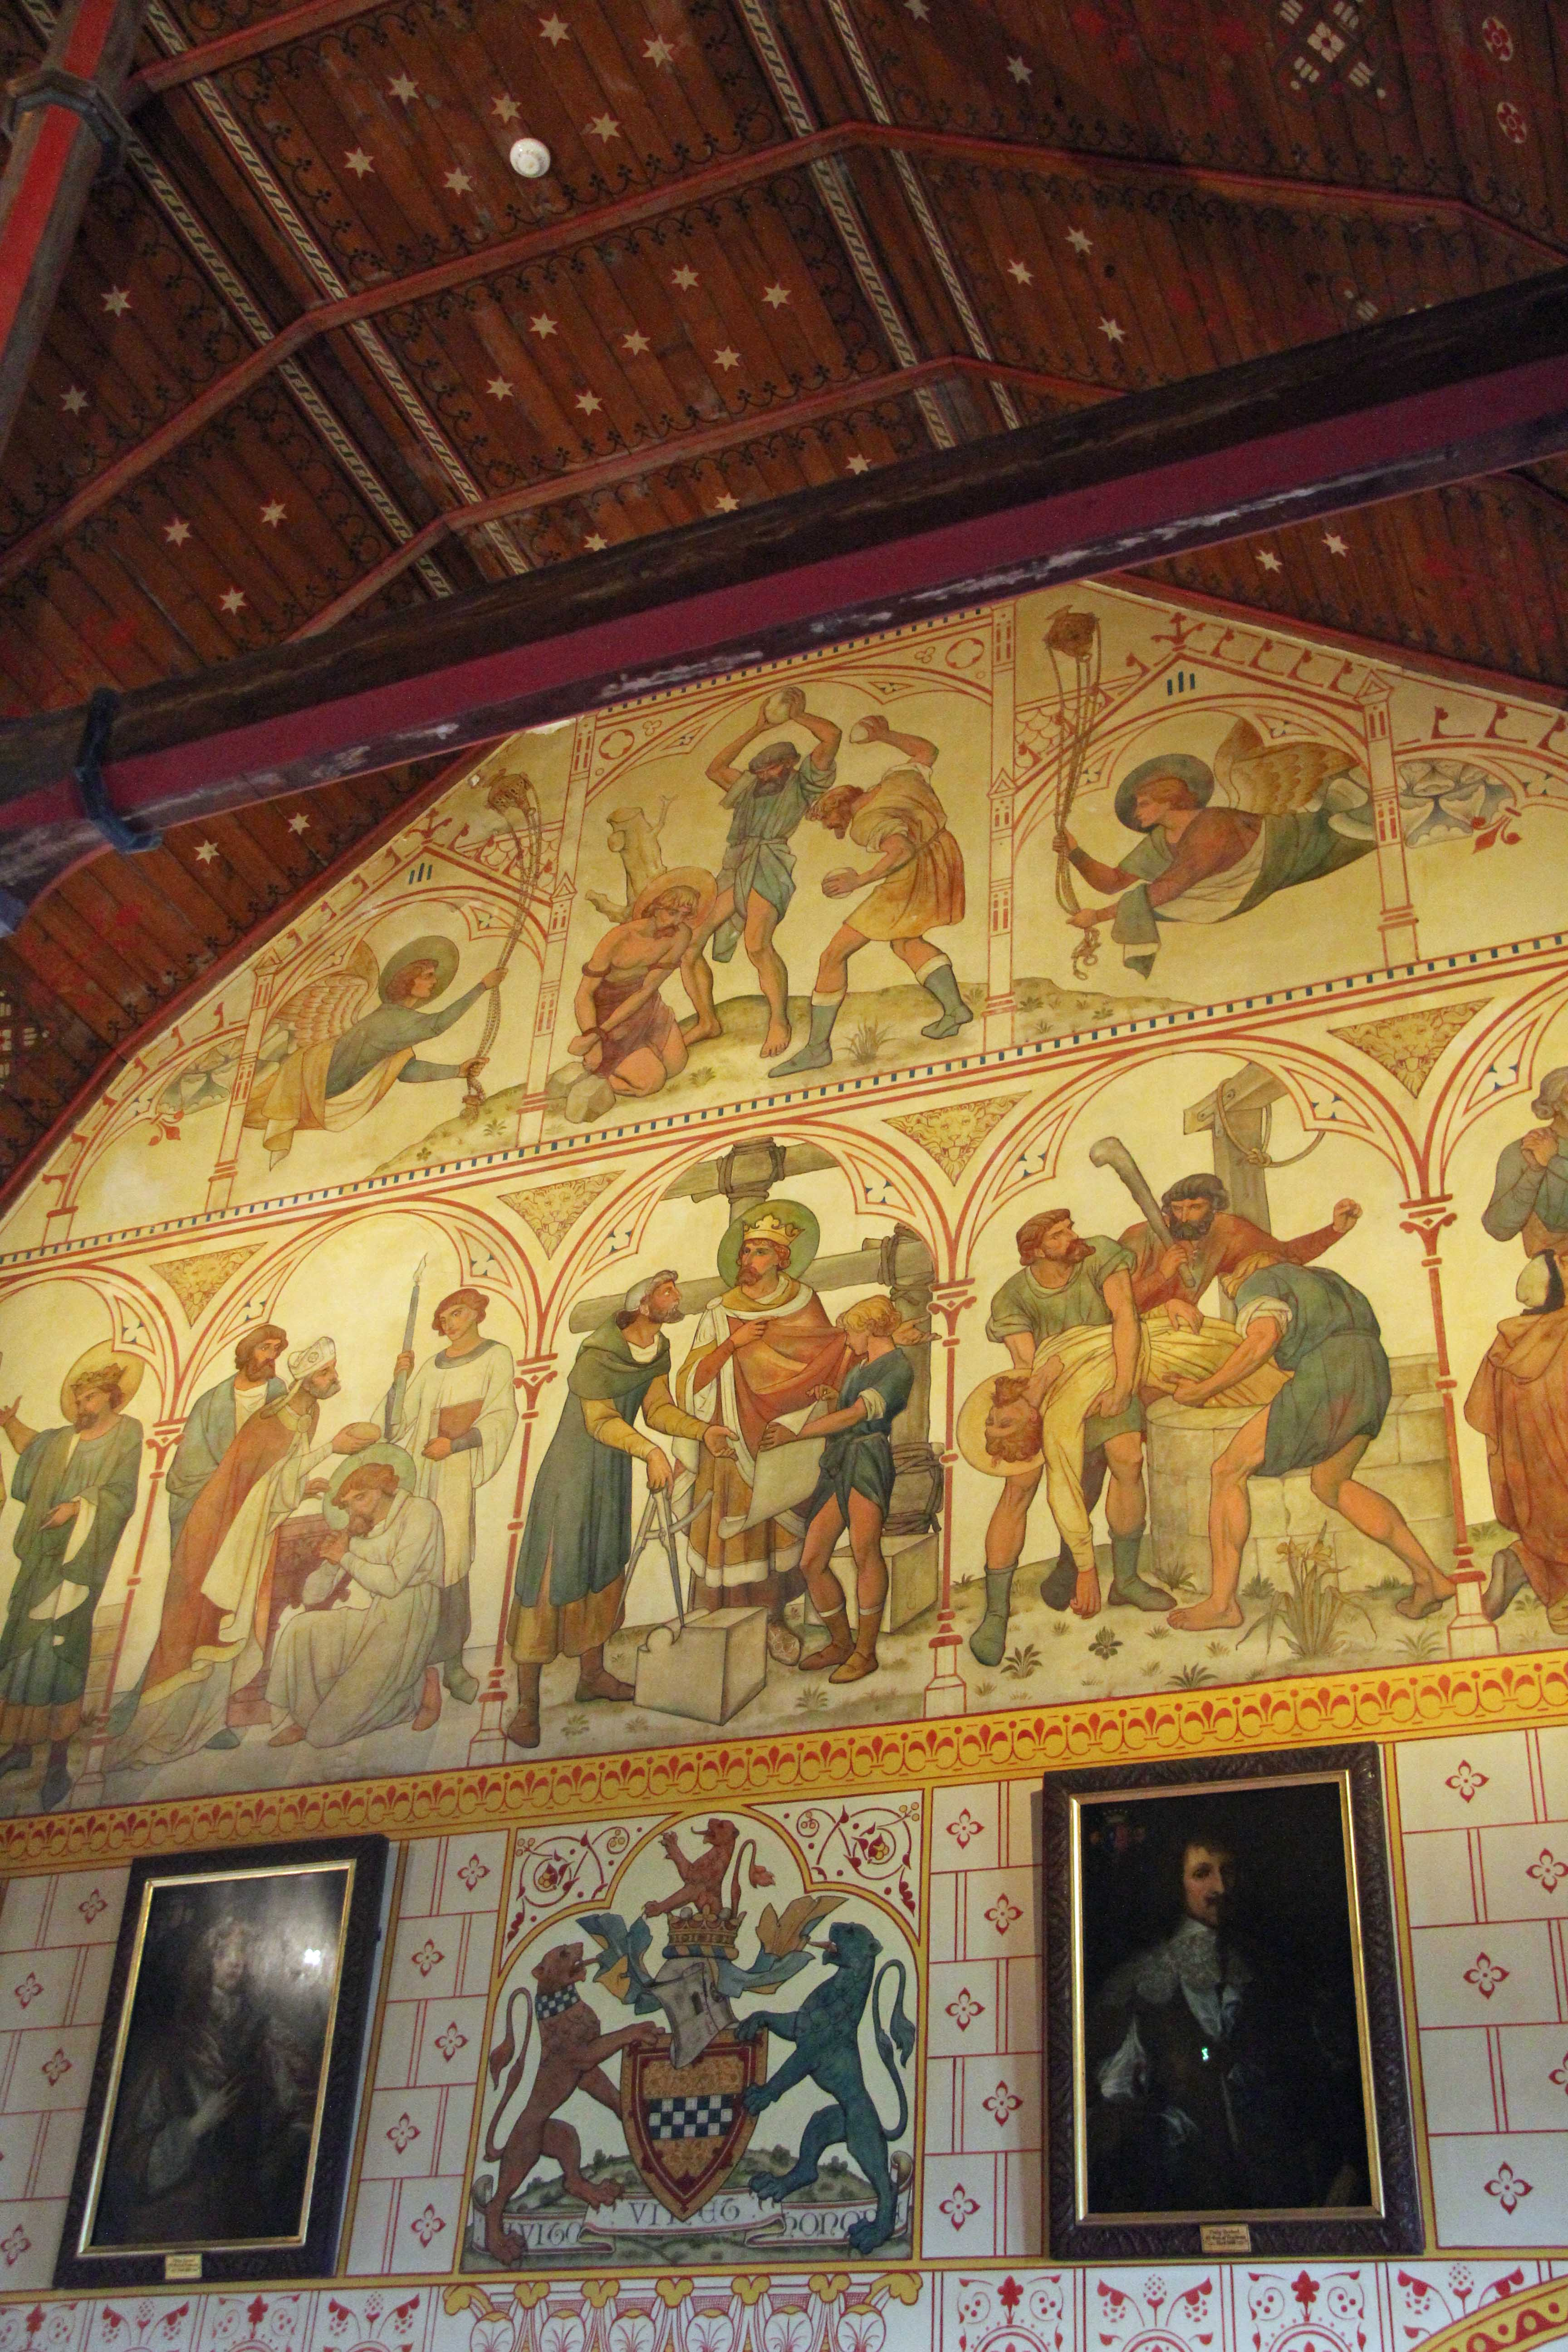 The wall of The Banqueting Hall at Castell Coch (Red Castle) near Cardiff